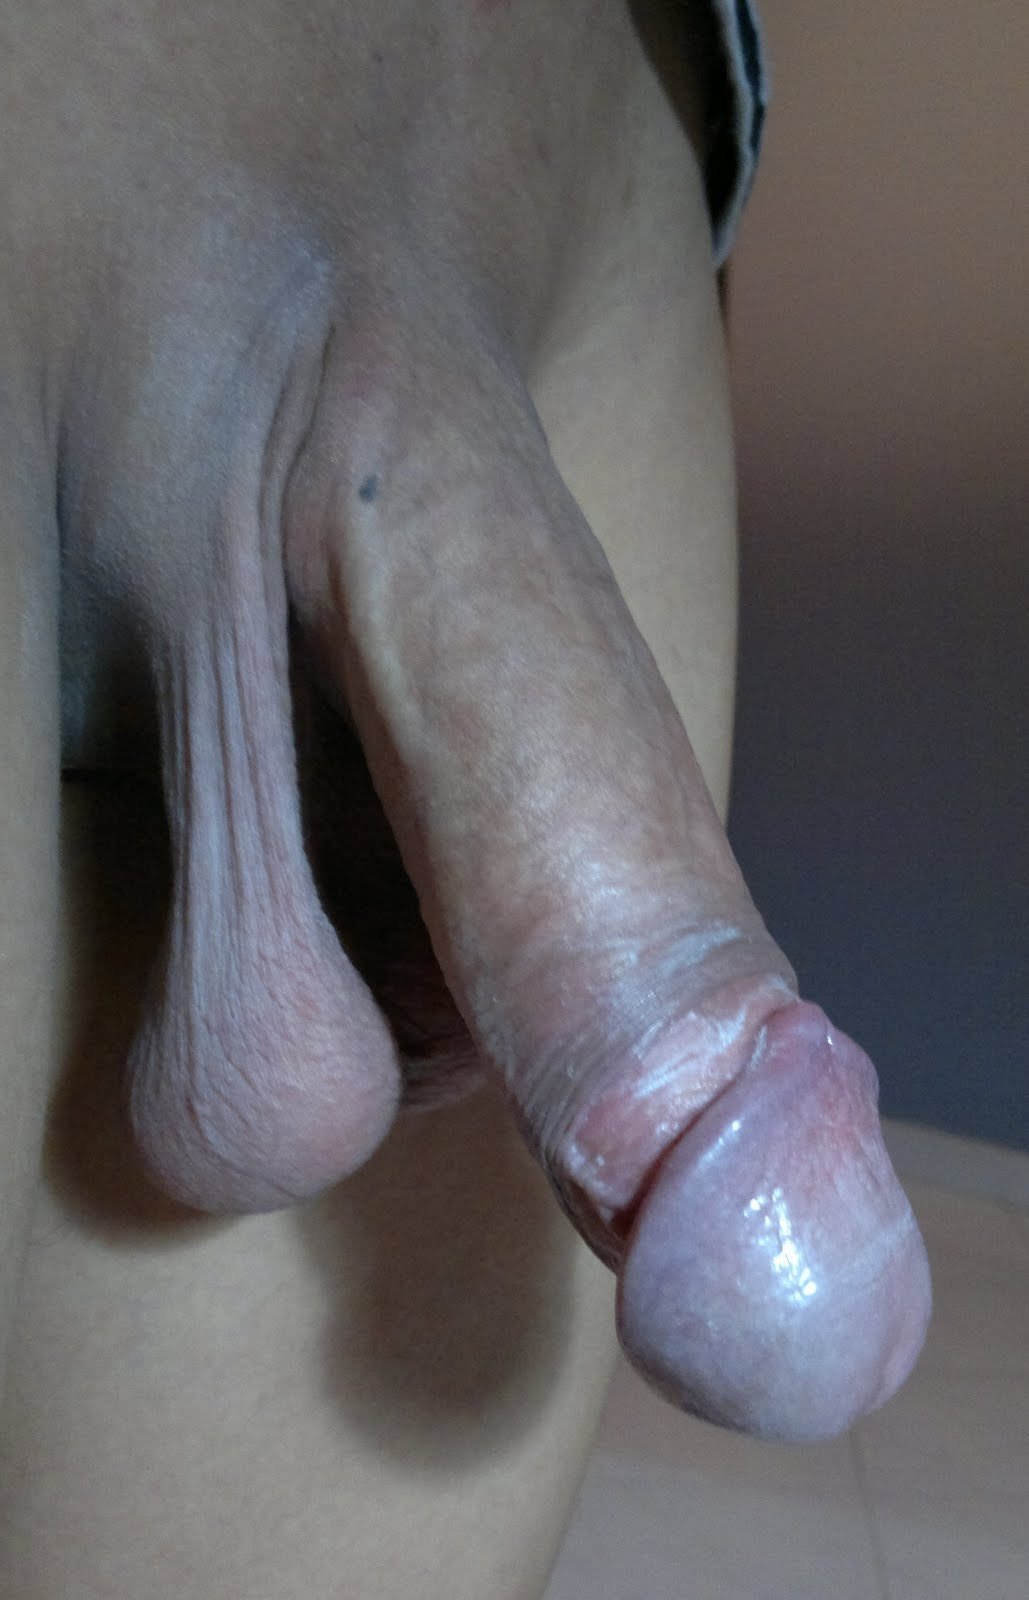 7 inch cock pic